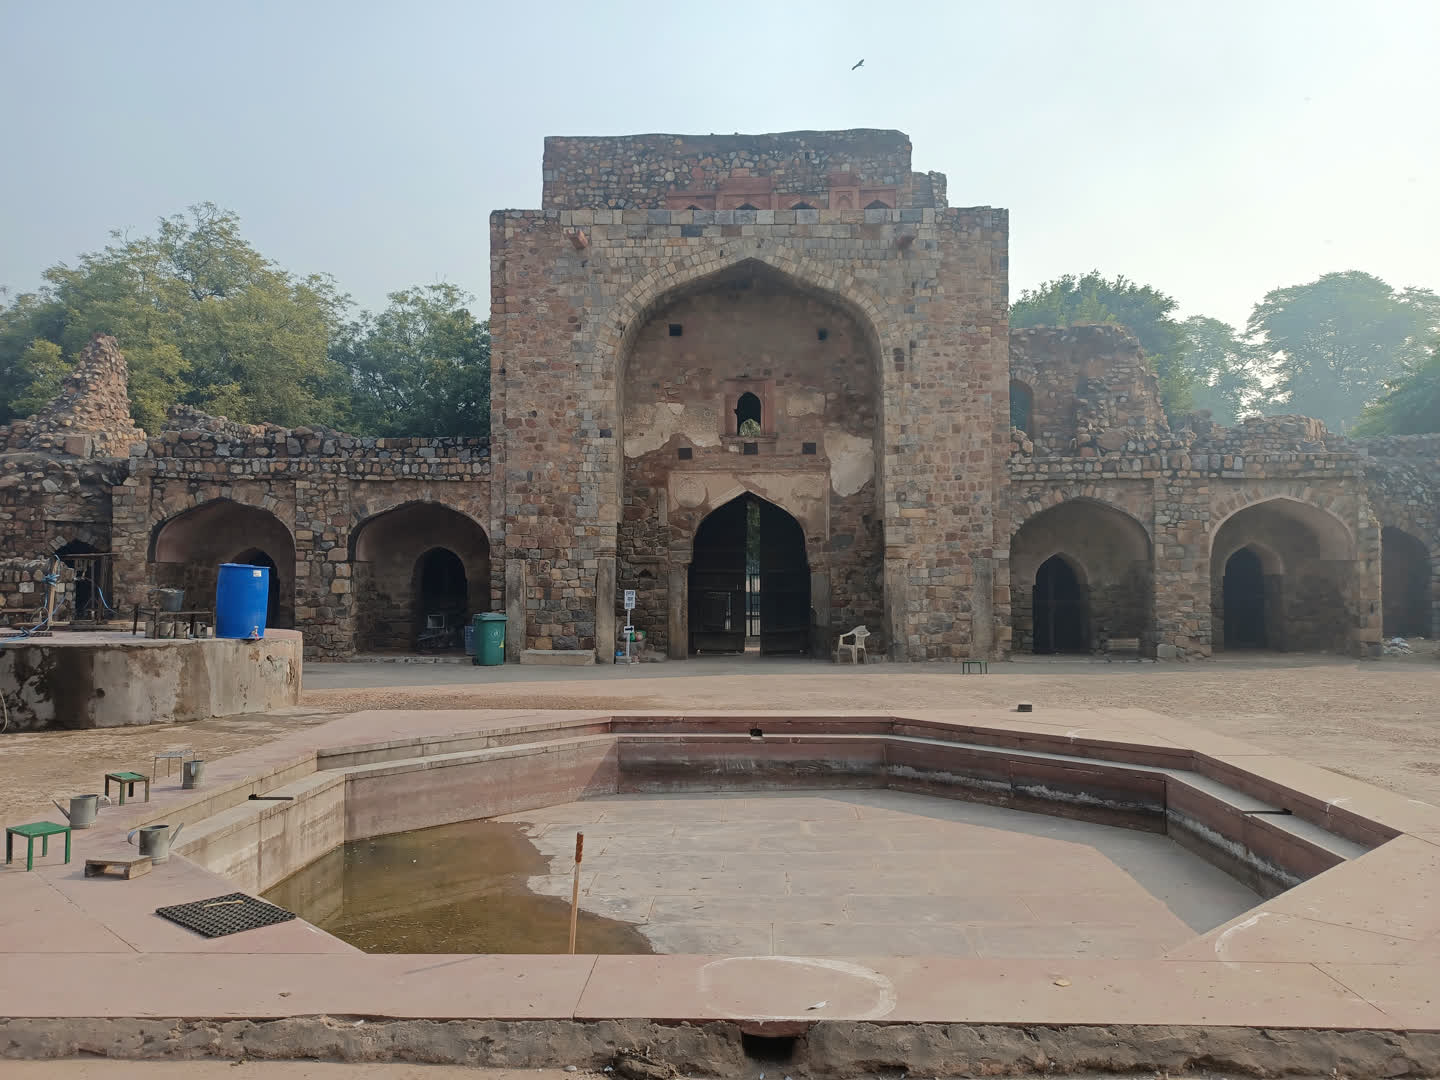 View from the mosque towards the entrance gate